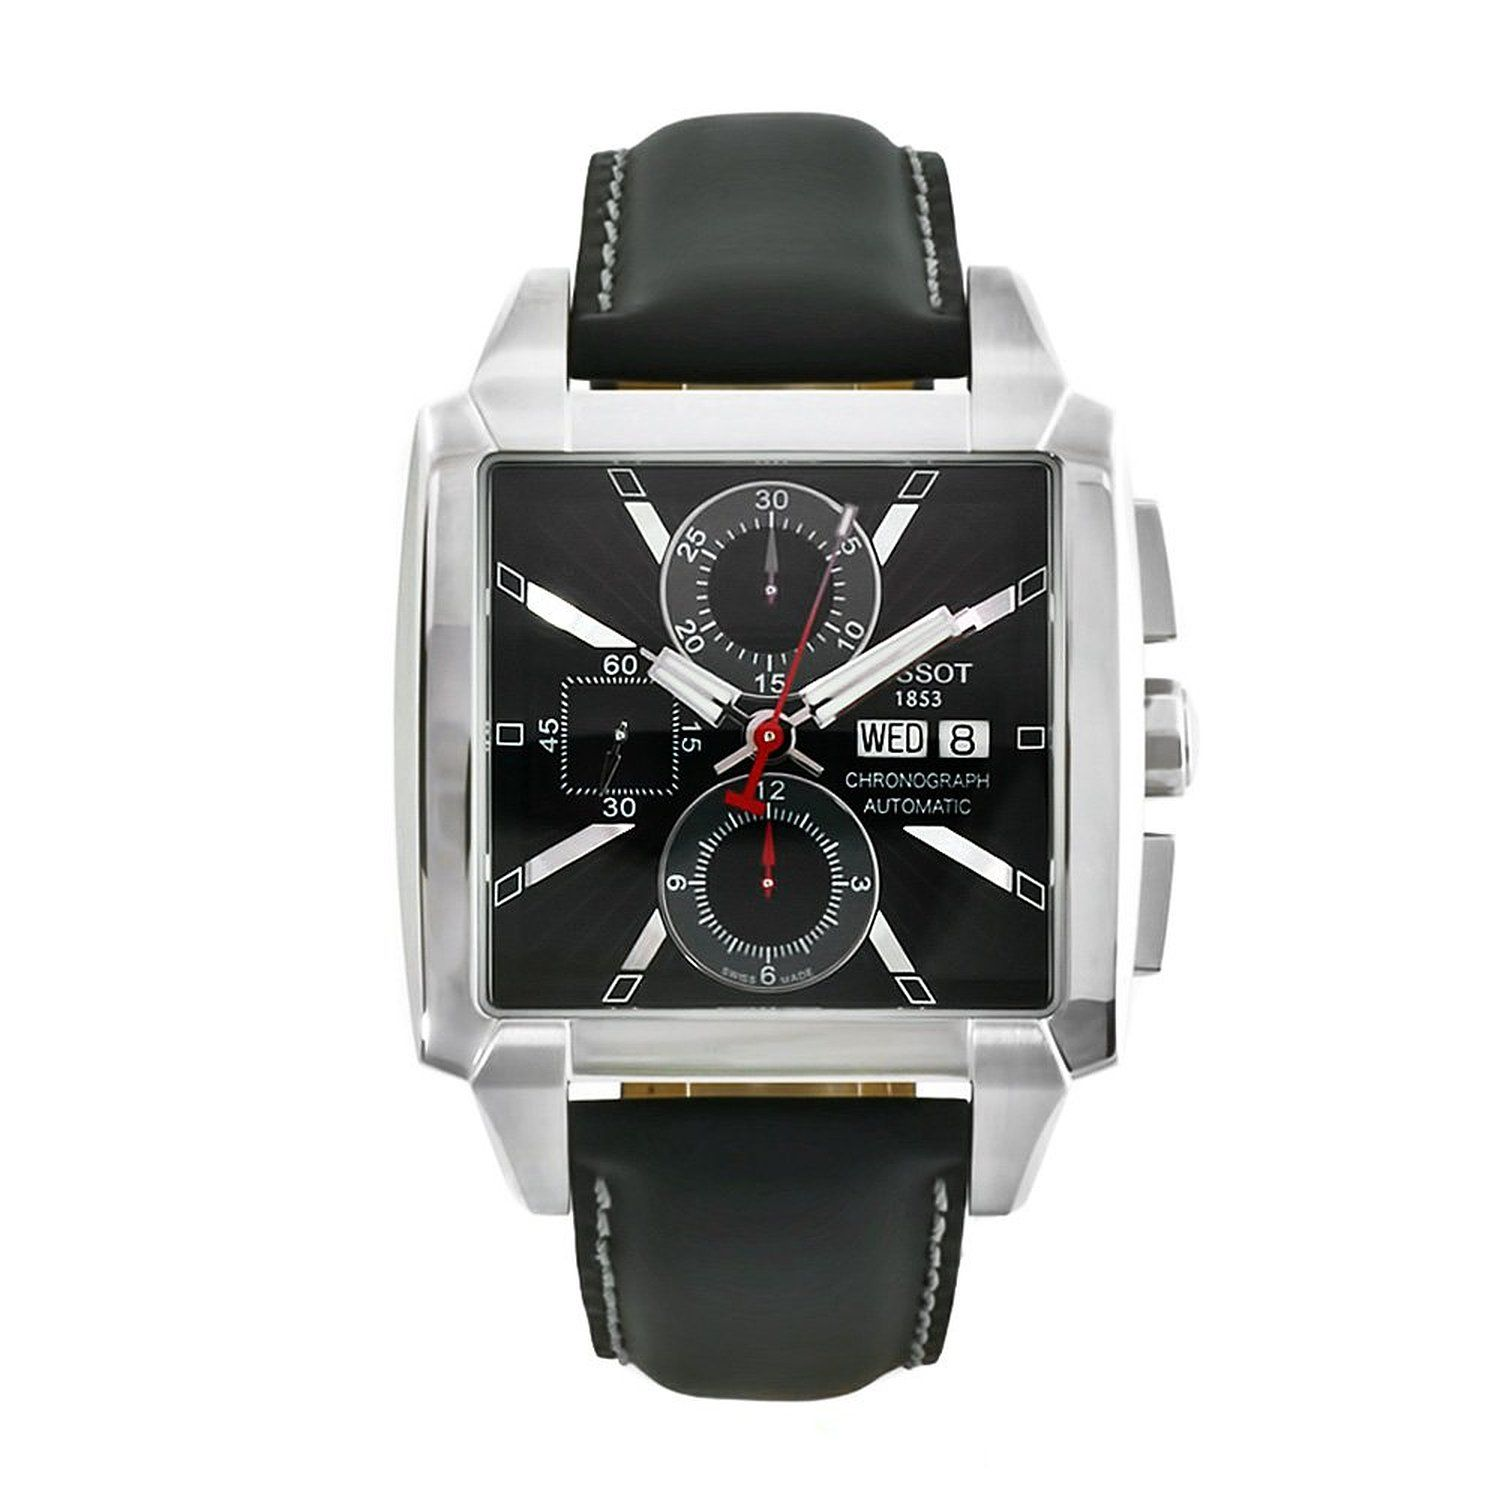 great tissot chronograph watches for men tissot chronograph great tissot chronograph watches for men